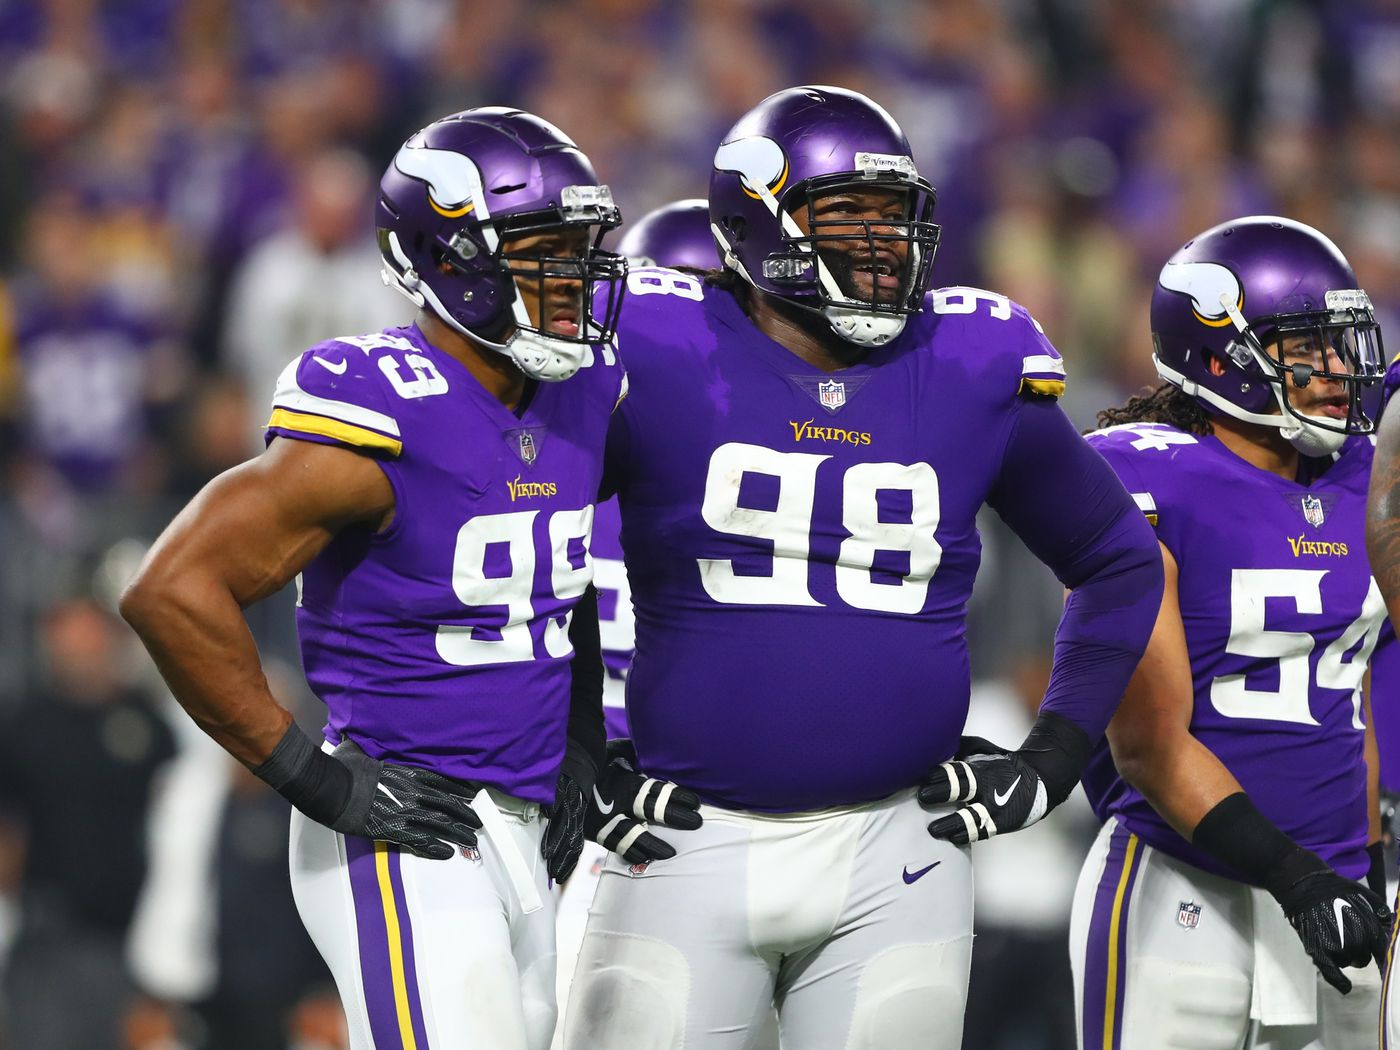 timeless design c82ad e6270 Handicapping the Vikings Defensive Linemen - Daily Norseman